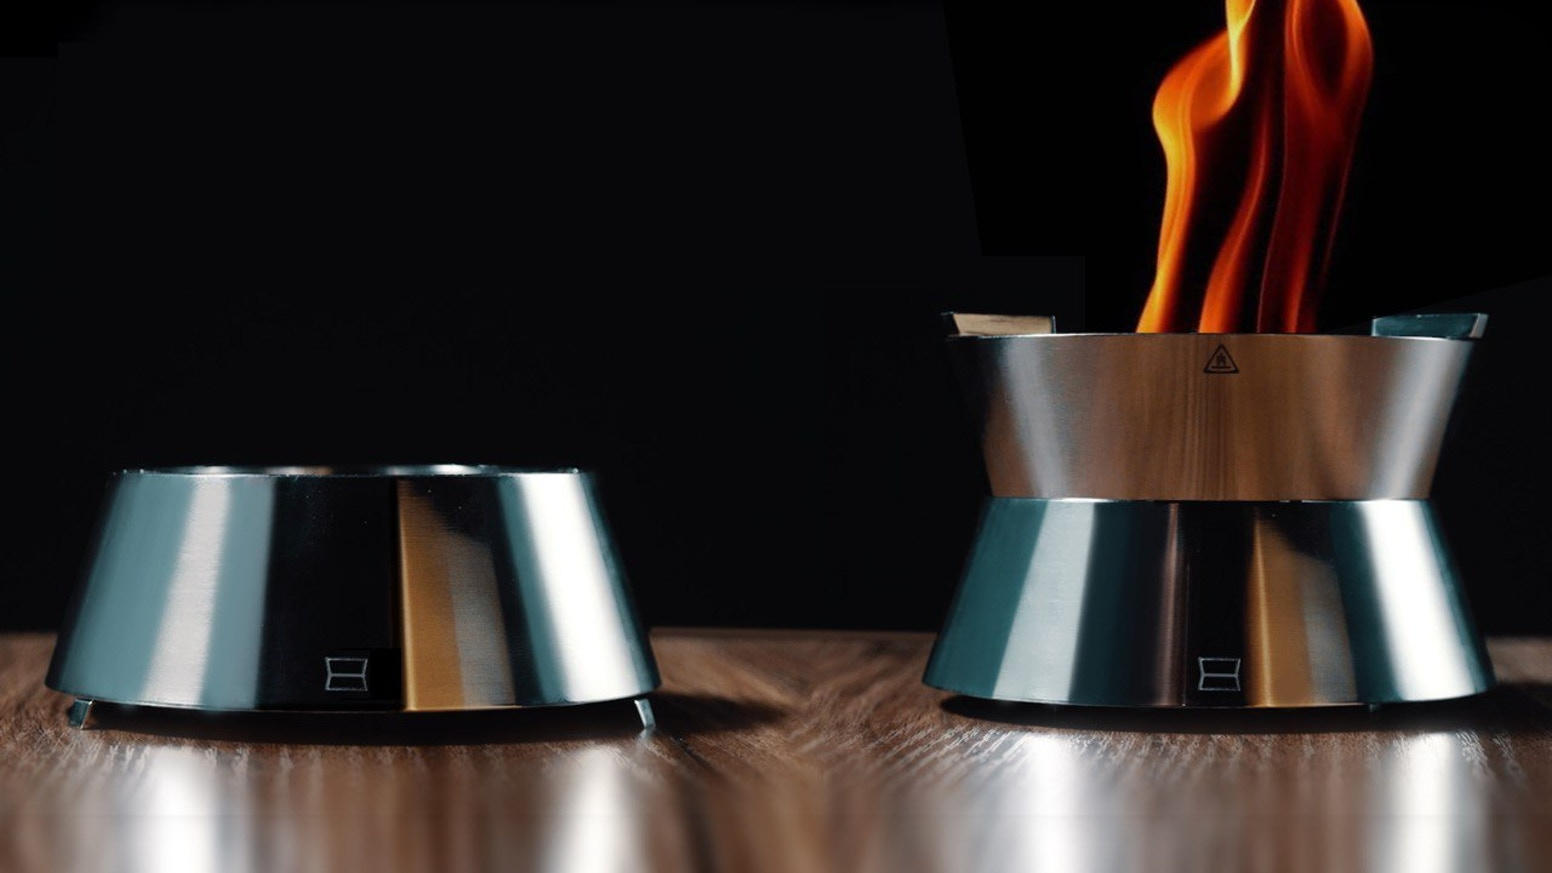 An ultra-compact stove with vortex efficiency to dish up tasty meals on the move